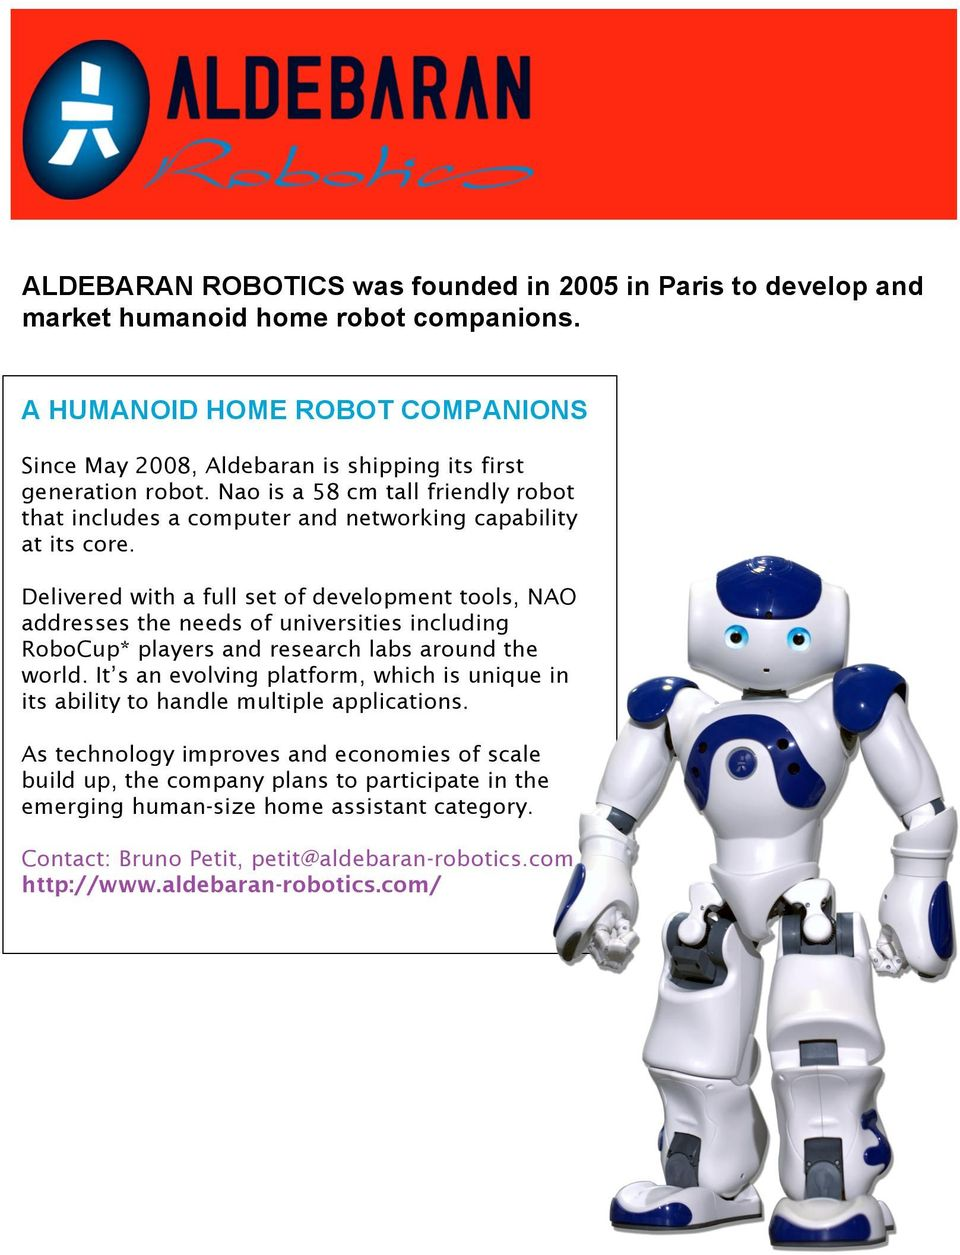 Nao is a 58 cm tall friendly robot that includes a computer and networking capability at its core.